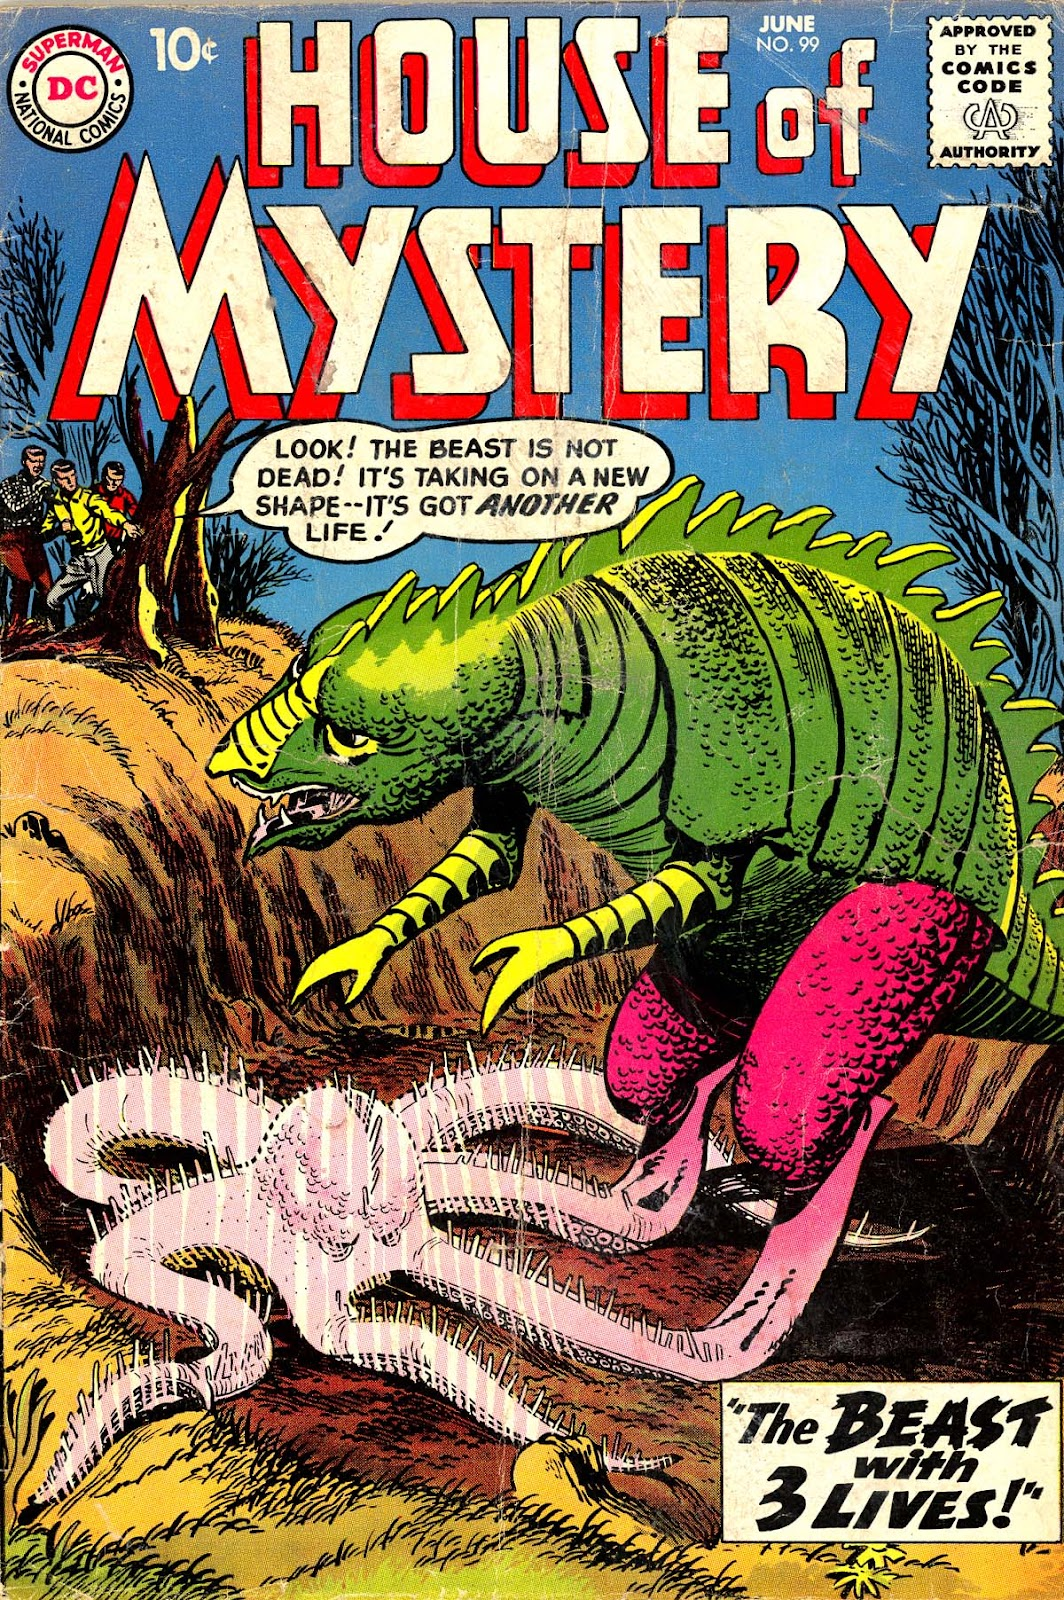 House of Mystery (1951) issue 99 - Page 1